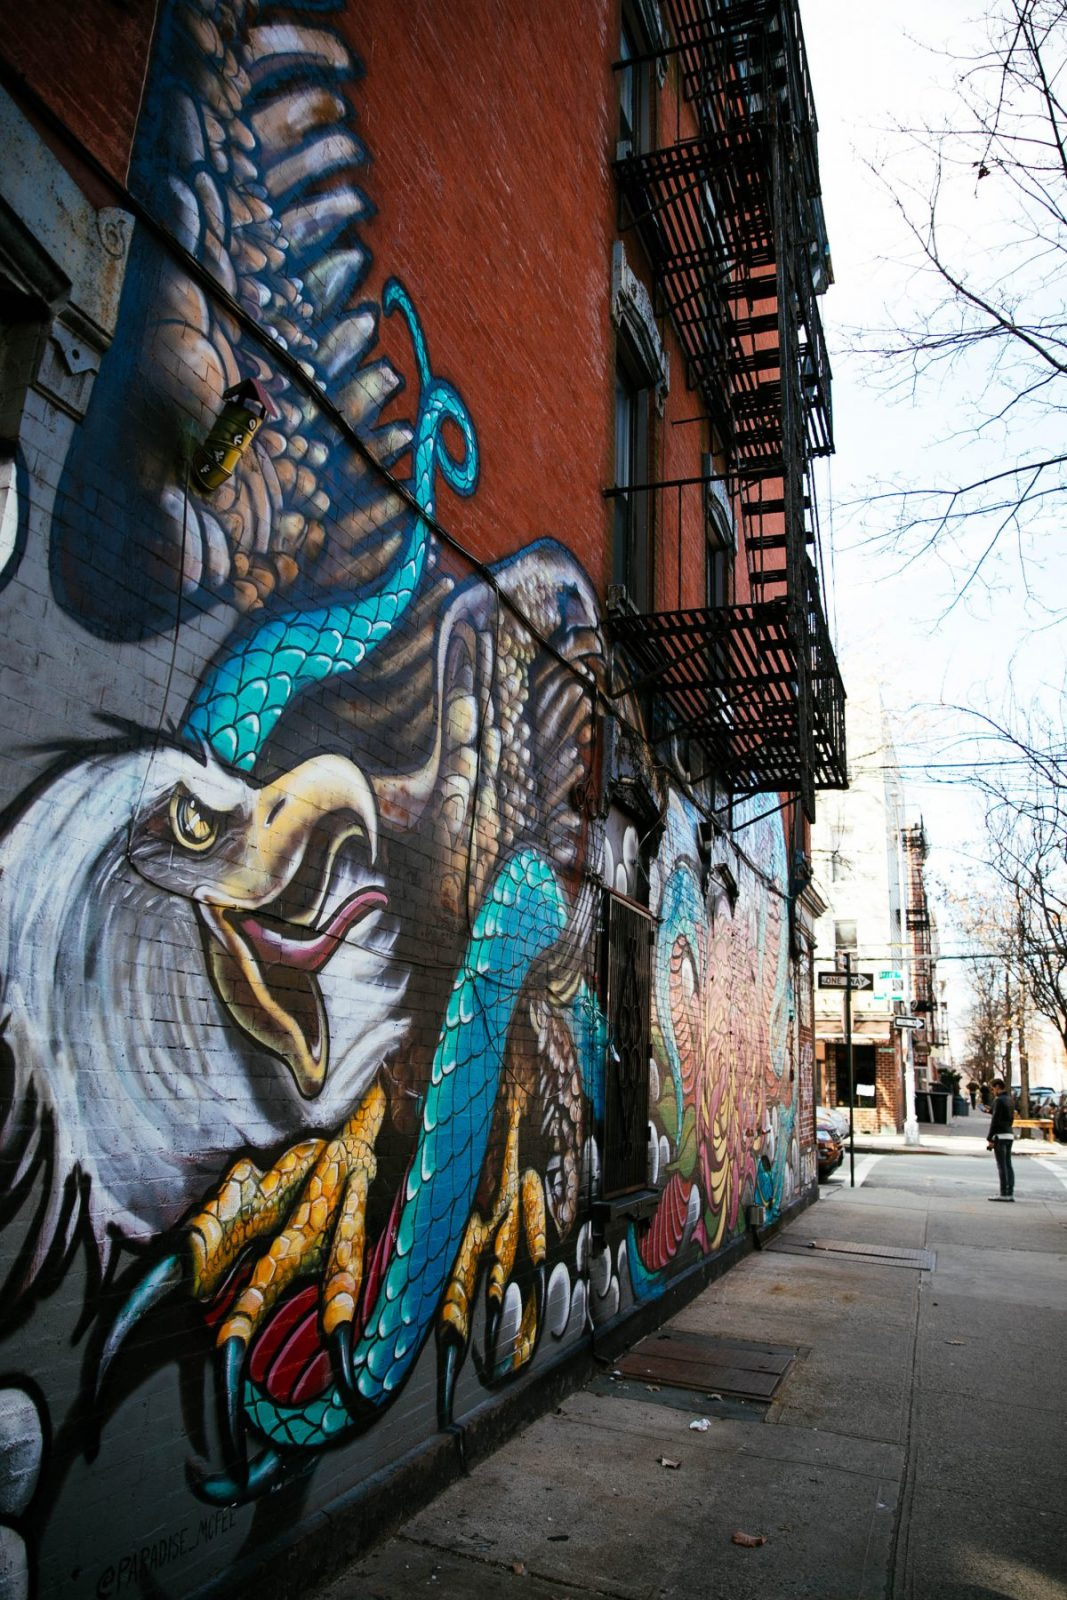 Williamsburg_NYC_Hotspots_Mattgstyle_1